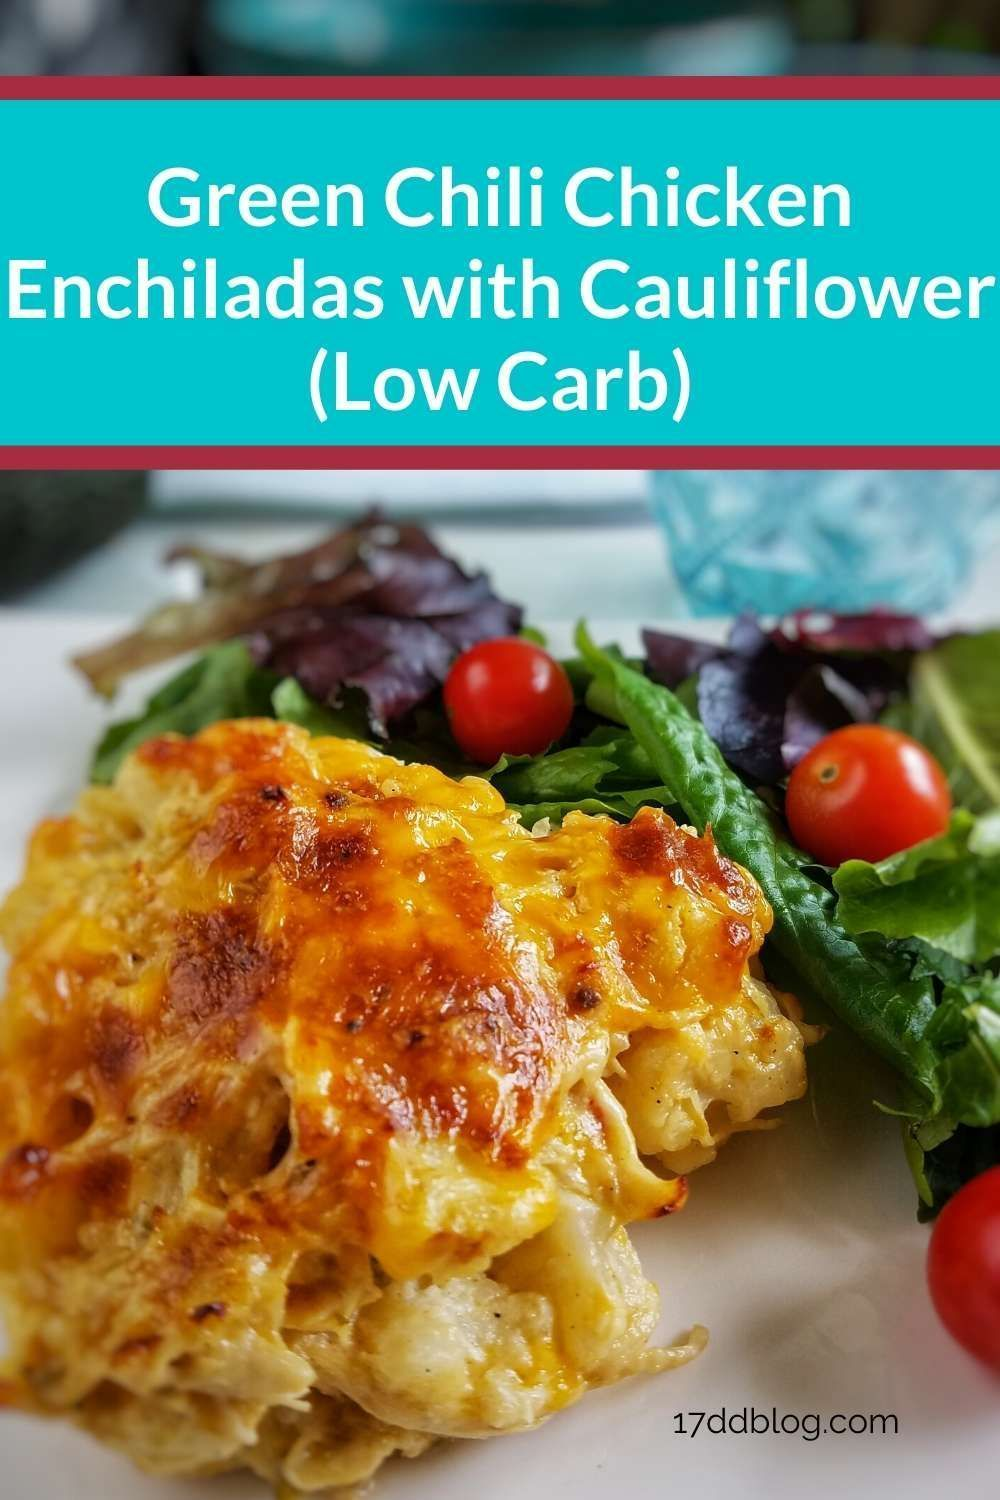 Talk about TASTY! This low-carb Green Chili Chicken Enchiladas with Cauliflower are to DIE FOR! Get the recipe and make this healthy dinner TONIGHT! #todieforchickenenchiladas Talk about TASTY! This low-carb Green Chili Chicken Enchiladas with Cauliflower are to DIE FOR! Get the recipe and make this healthy dinner TONIGHT! #todieforchickenenchiladas Talk about TASTY! This low-carb Green Chili Chicken Enchiladas with Cauliflower are to DIE FOR! Get the recipe and make this healthy dinner TONIGHT! #todieforchickenenchiladas